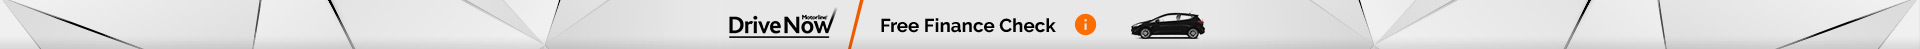 Drive Now Free Finance Check